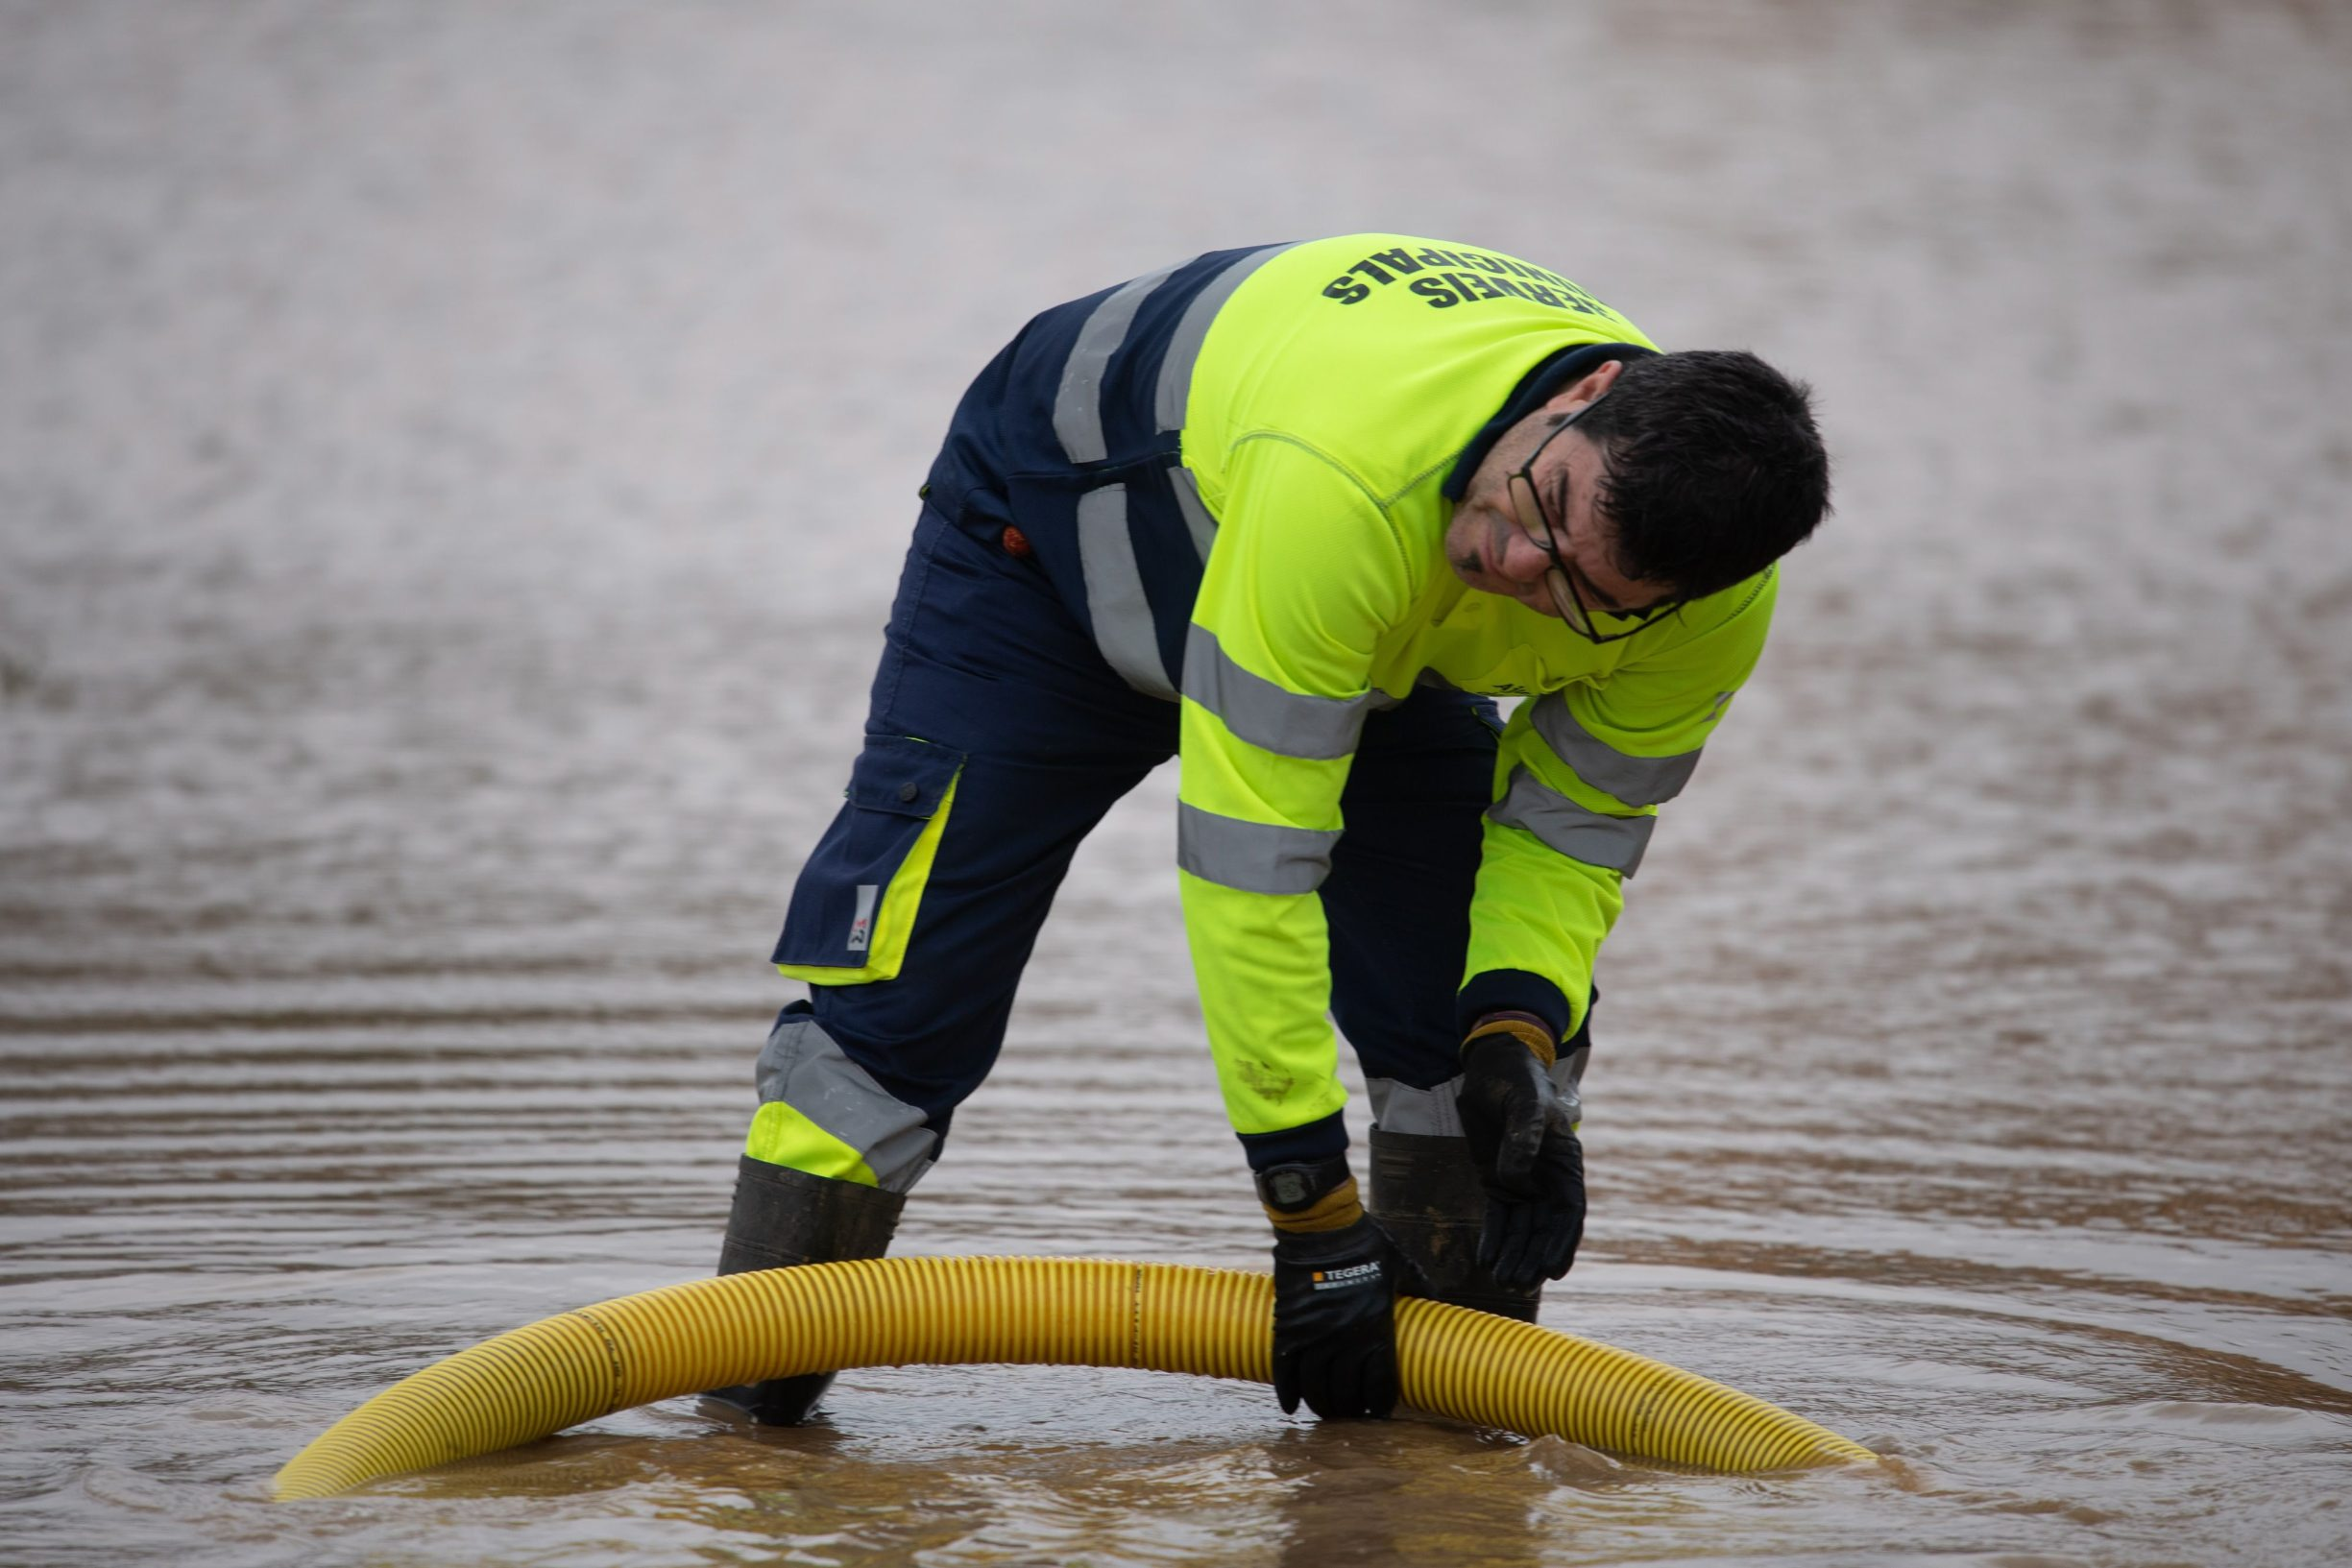 A man drains water on a flooded street in Malgrat de Mar, near Girona on January 22, 2020, as storm Gloria batters Spanish eastern coast. - A winter storm which has killed three people lashed much of eastern Spain for a third day yesterday, cutting power, forcing the closure of schools and severing road and rail links. National weather agency Aemet placed most of northeastern Spain on alert because of the storm packing gusts of over 100 kilometres (60 miles) per hour, heavy snowfall, freezing rain and massive waves which smashed into seafront promenades, damaging shops and restaurants. (Photo by Josep LAGO / AFP)